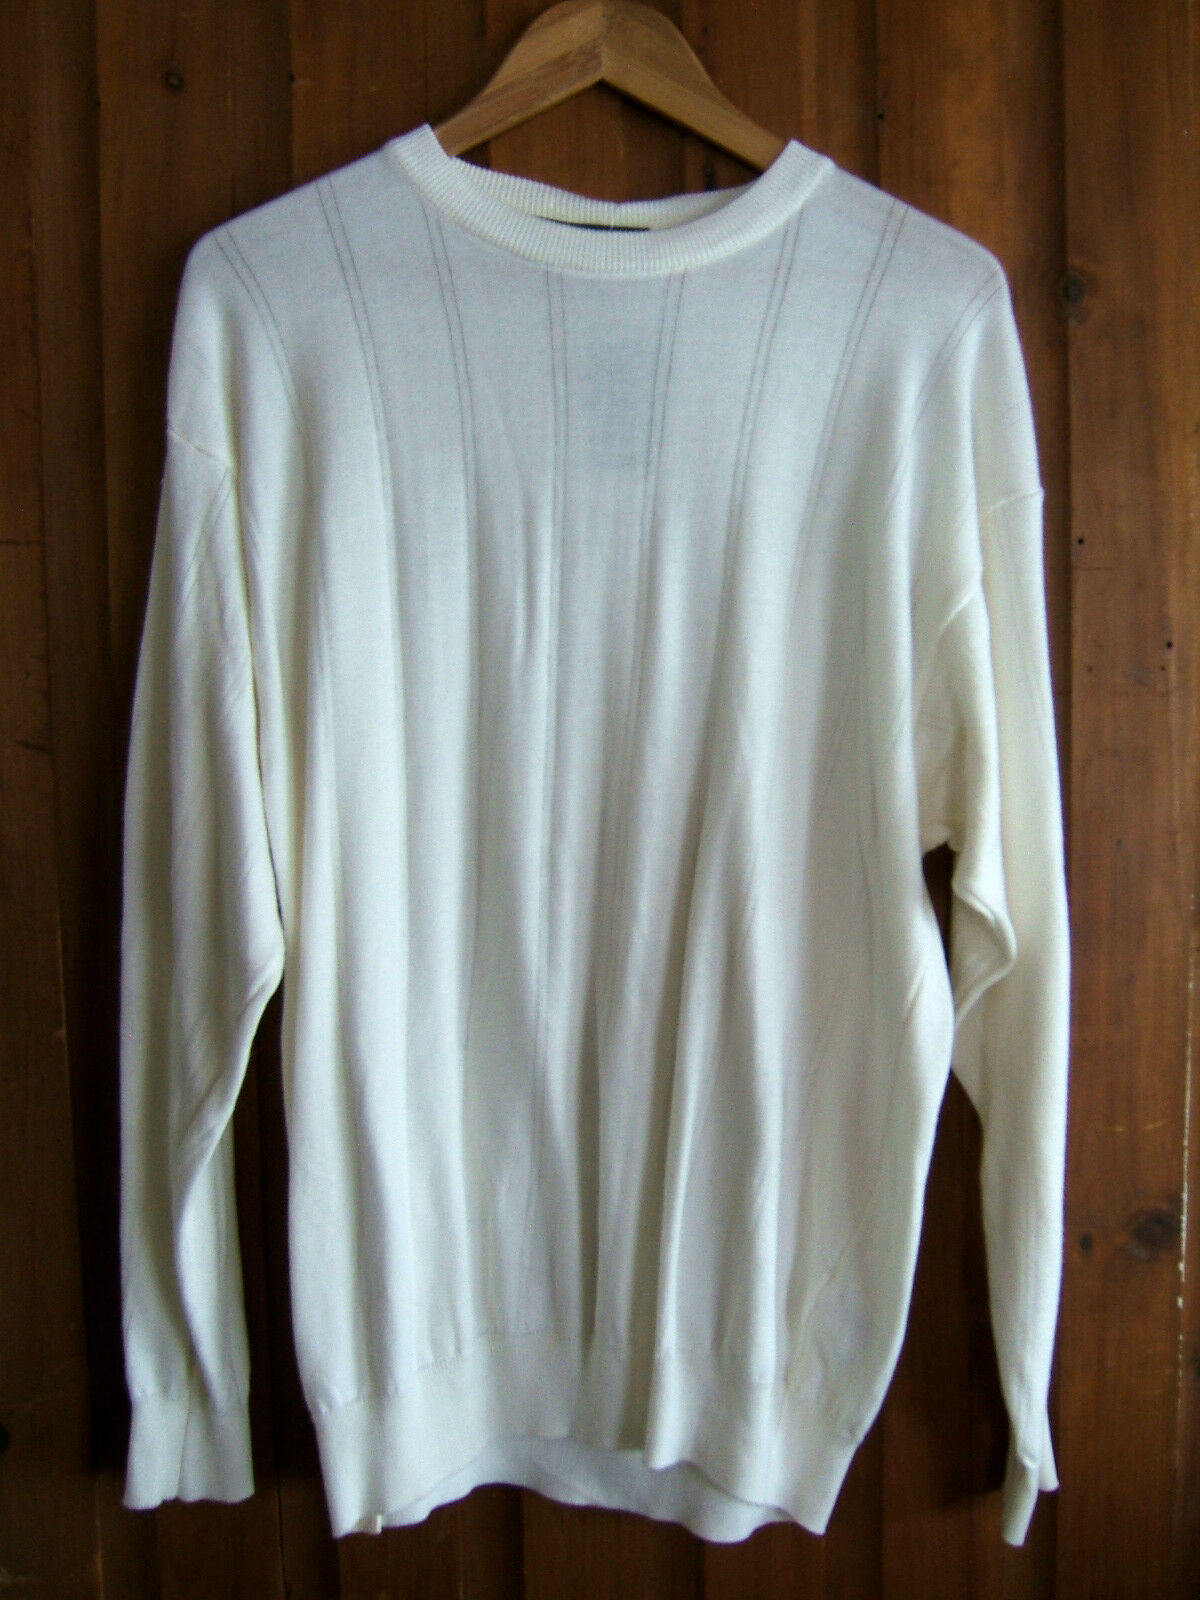 NWT Tricots St. Raphael Designer Stone Wash White Handsome Jumper Sweater S